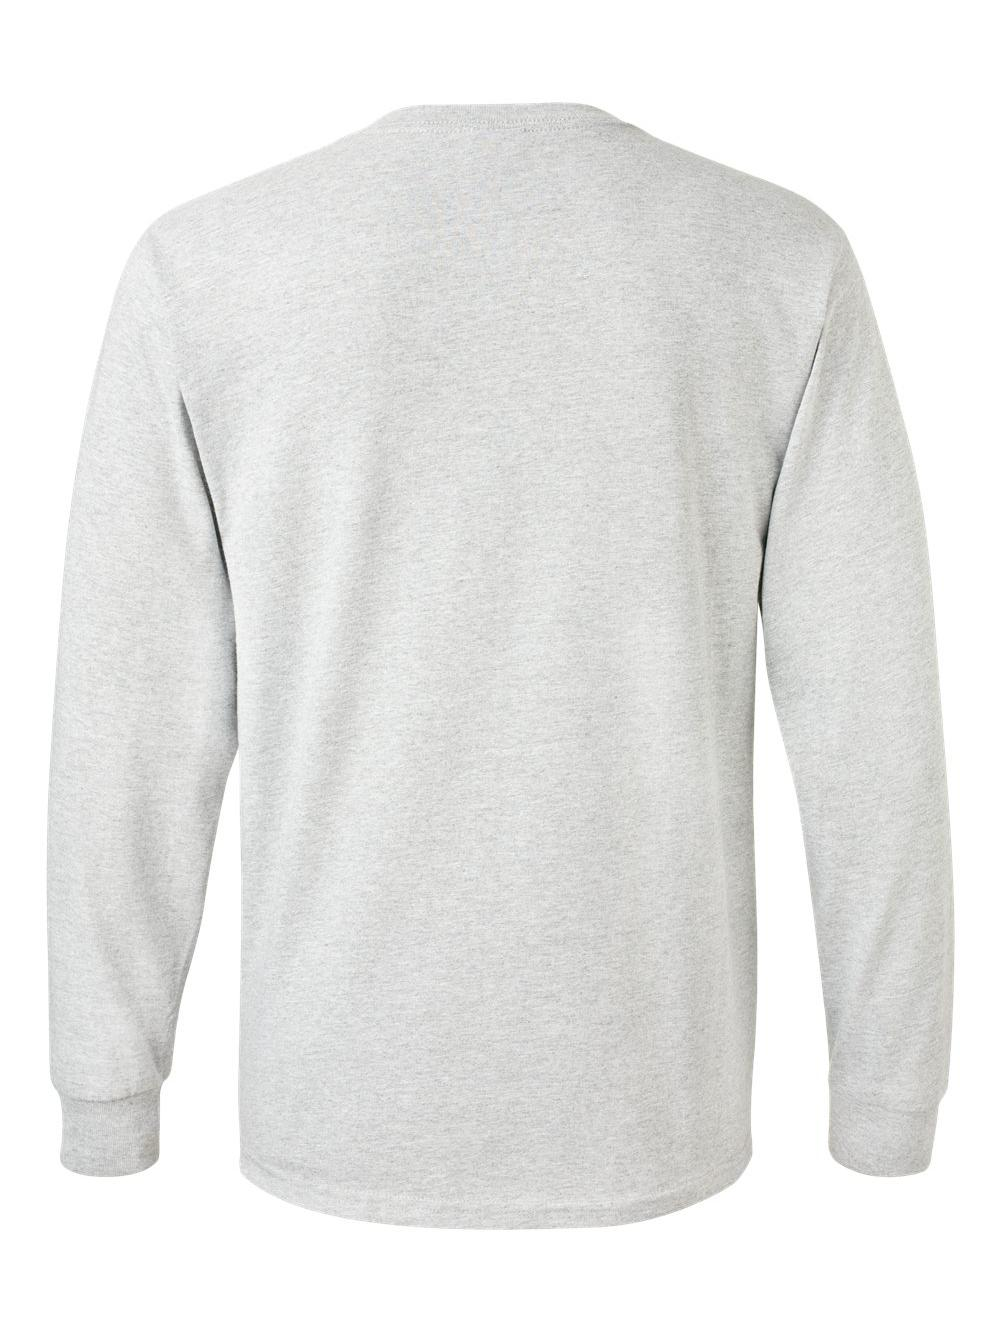 Fruit-of-the-Loom-HD-Cotton-Long-Sleeve-T-Shirt-4930R thumbnail 4